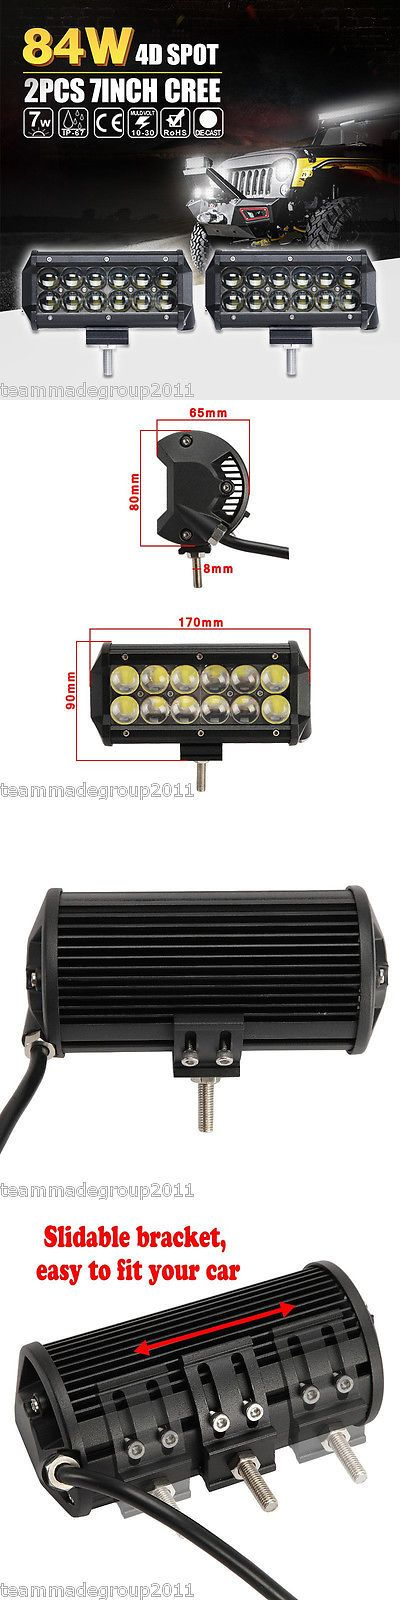 Car Lighting: Pair 7Inch 84W Cree Led Light Bar Work Spot Driving For Jeep Suv Pk 36W Flood 6 BUY IT NOW ONLY: $41.95